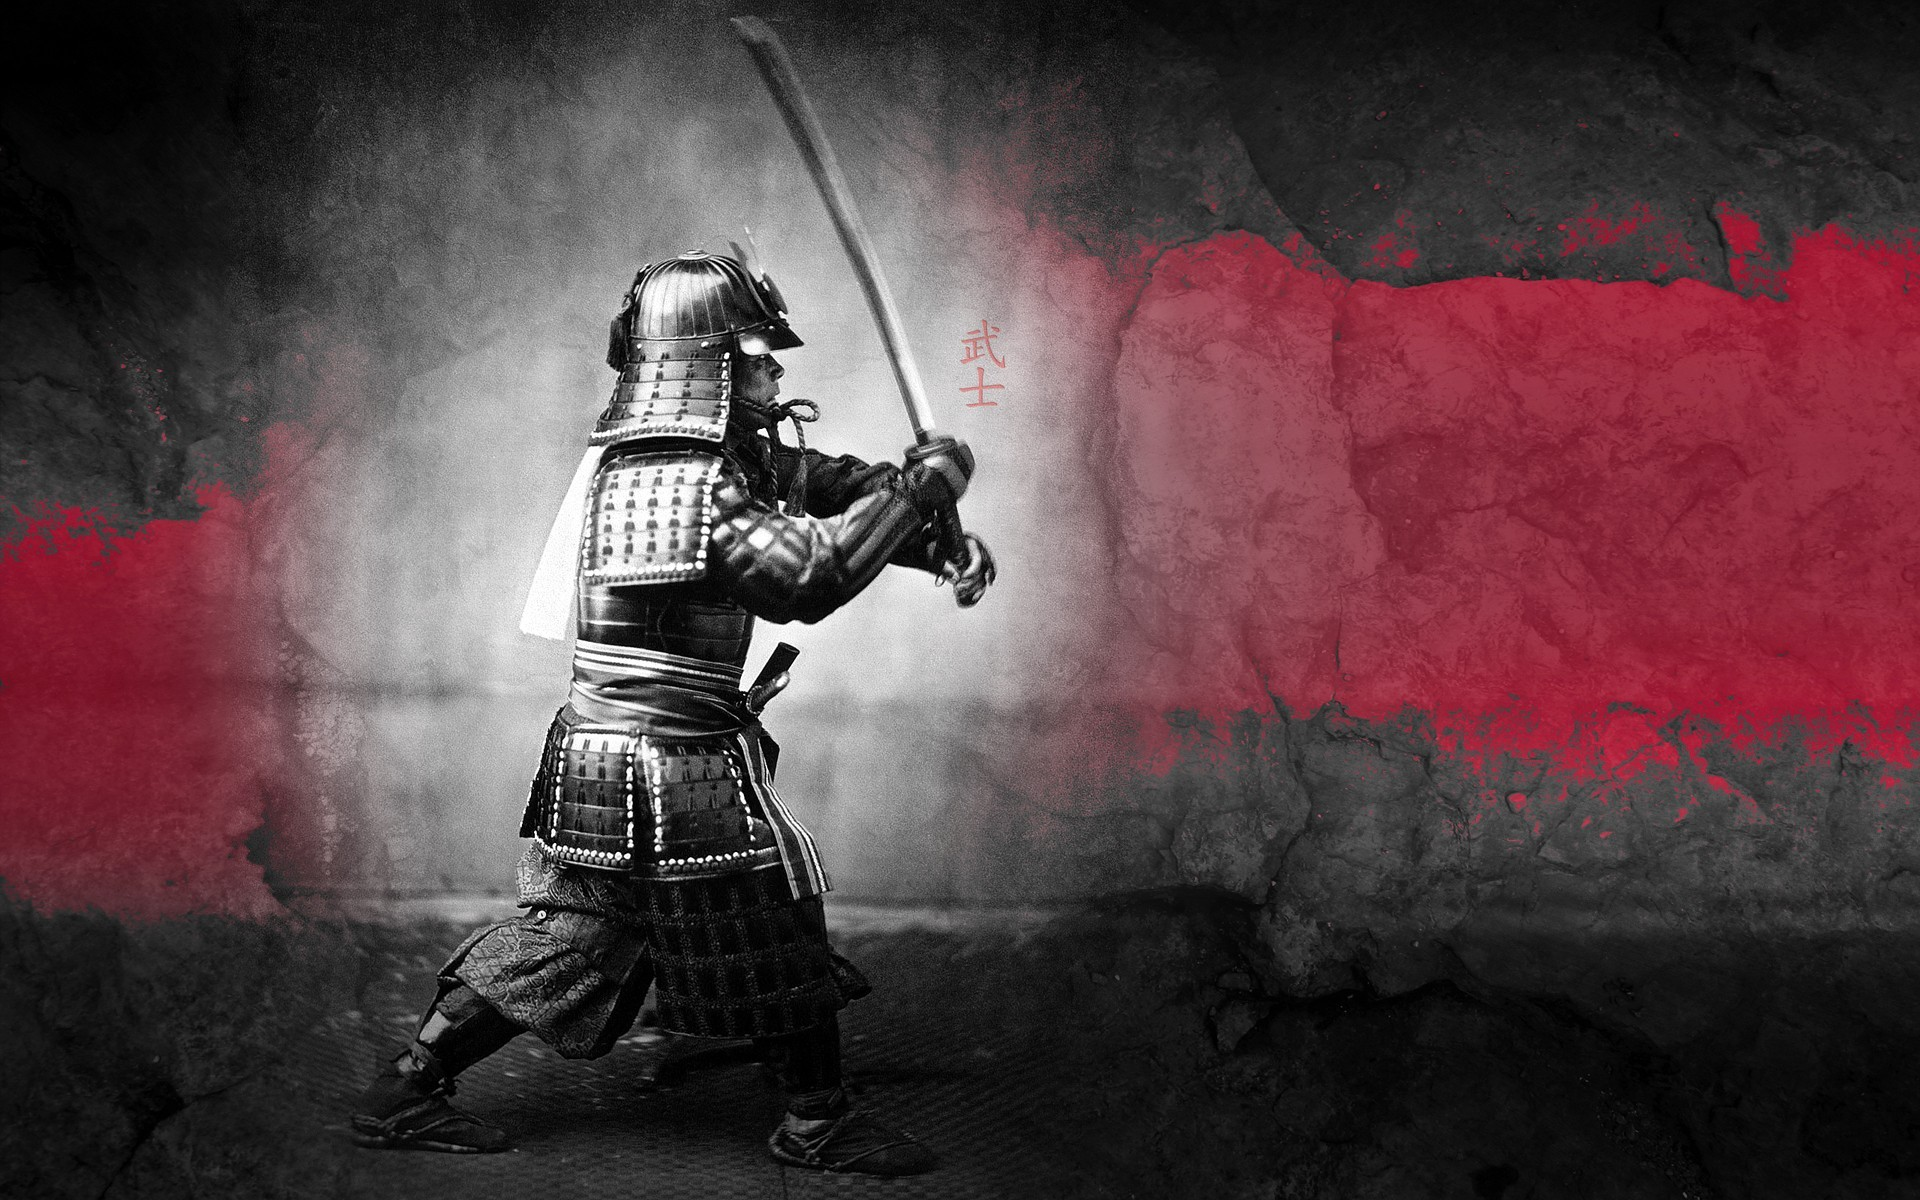 Samurai Wallpaper Download Free Beautiful Hd Backgrounds For